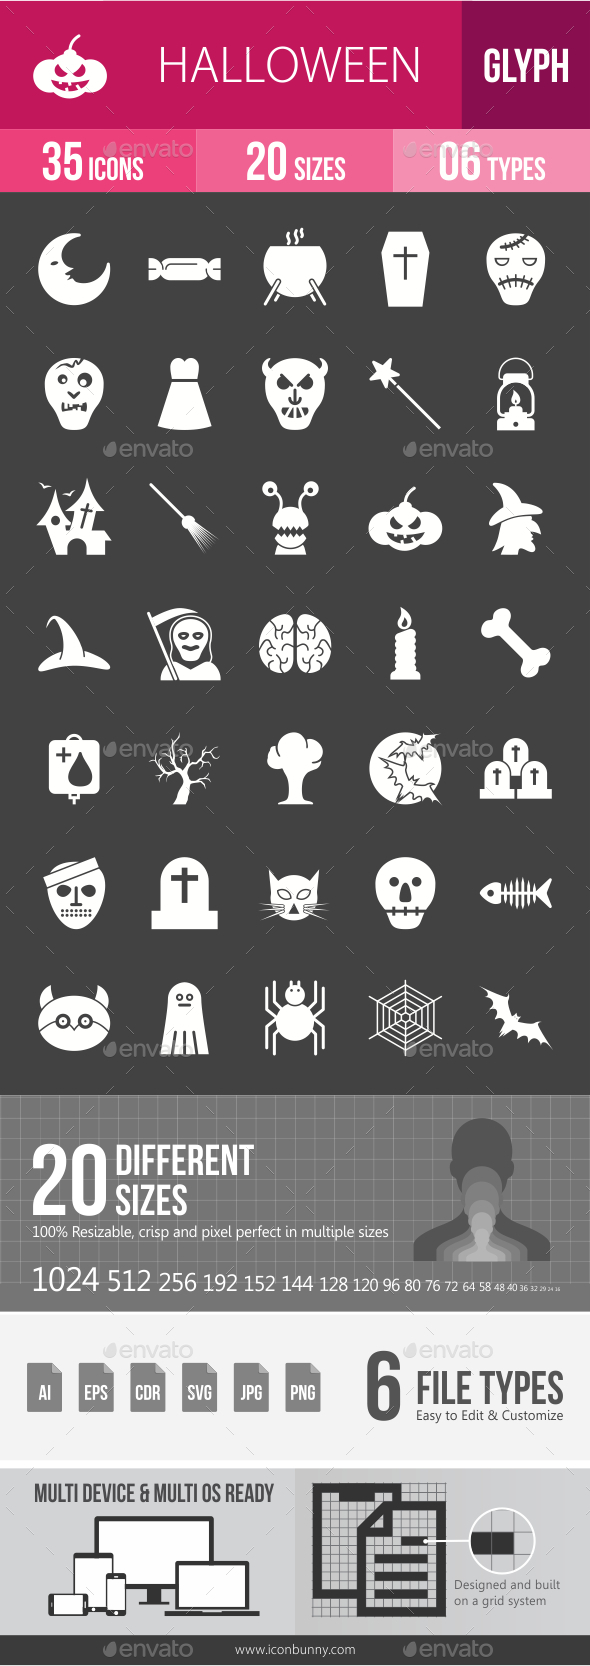 Halloween Glyph Inverted Icons